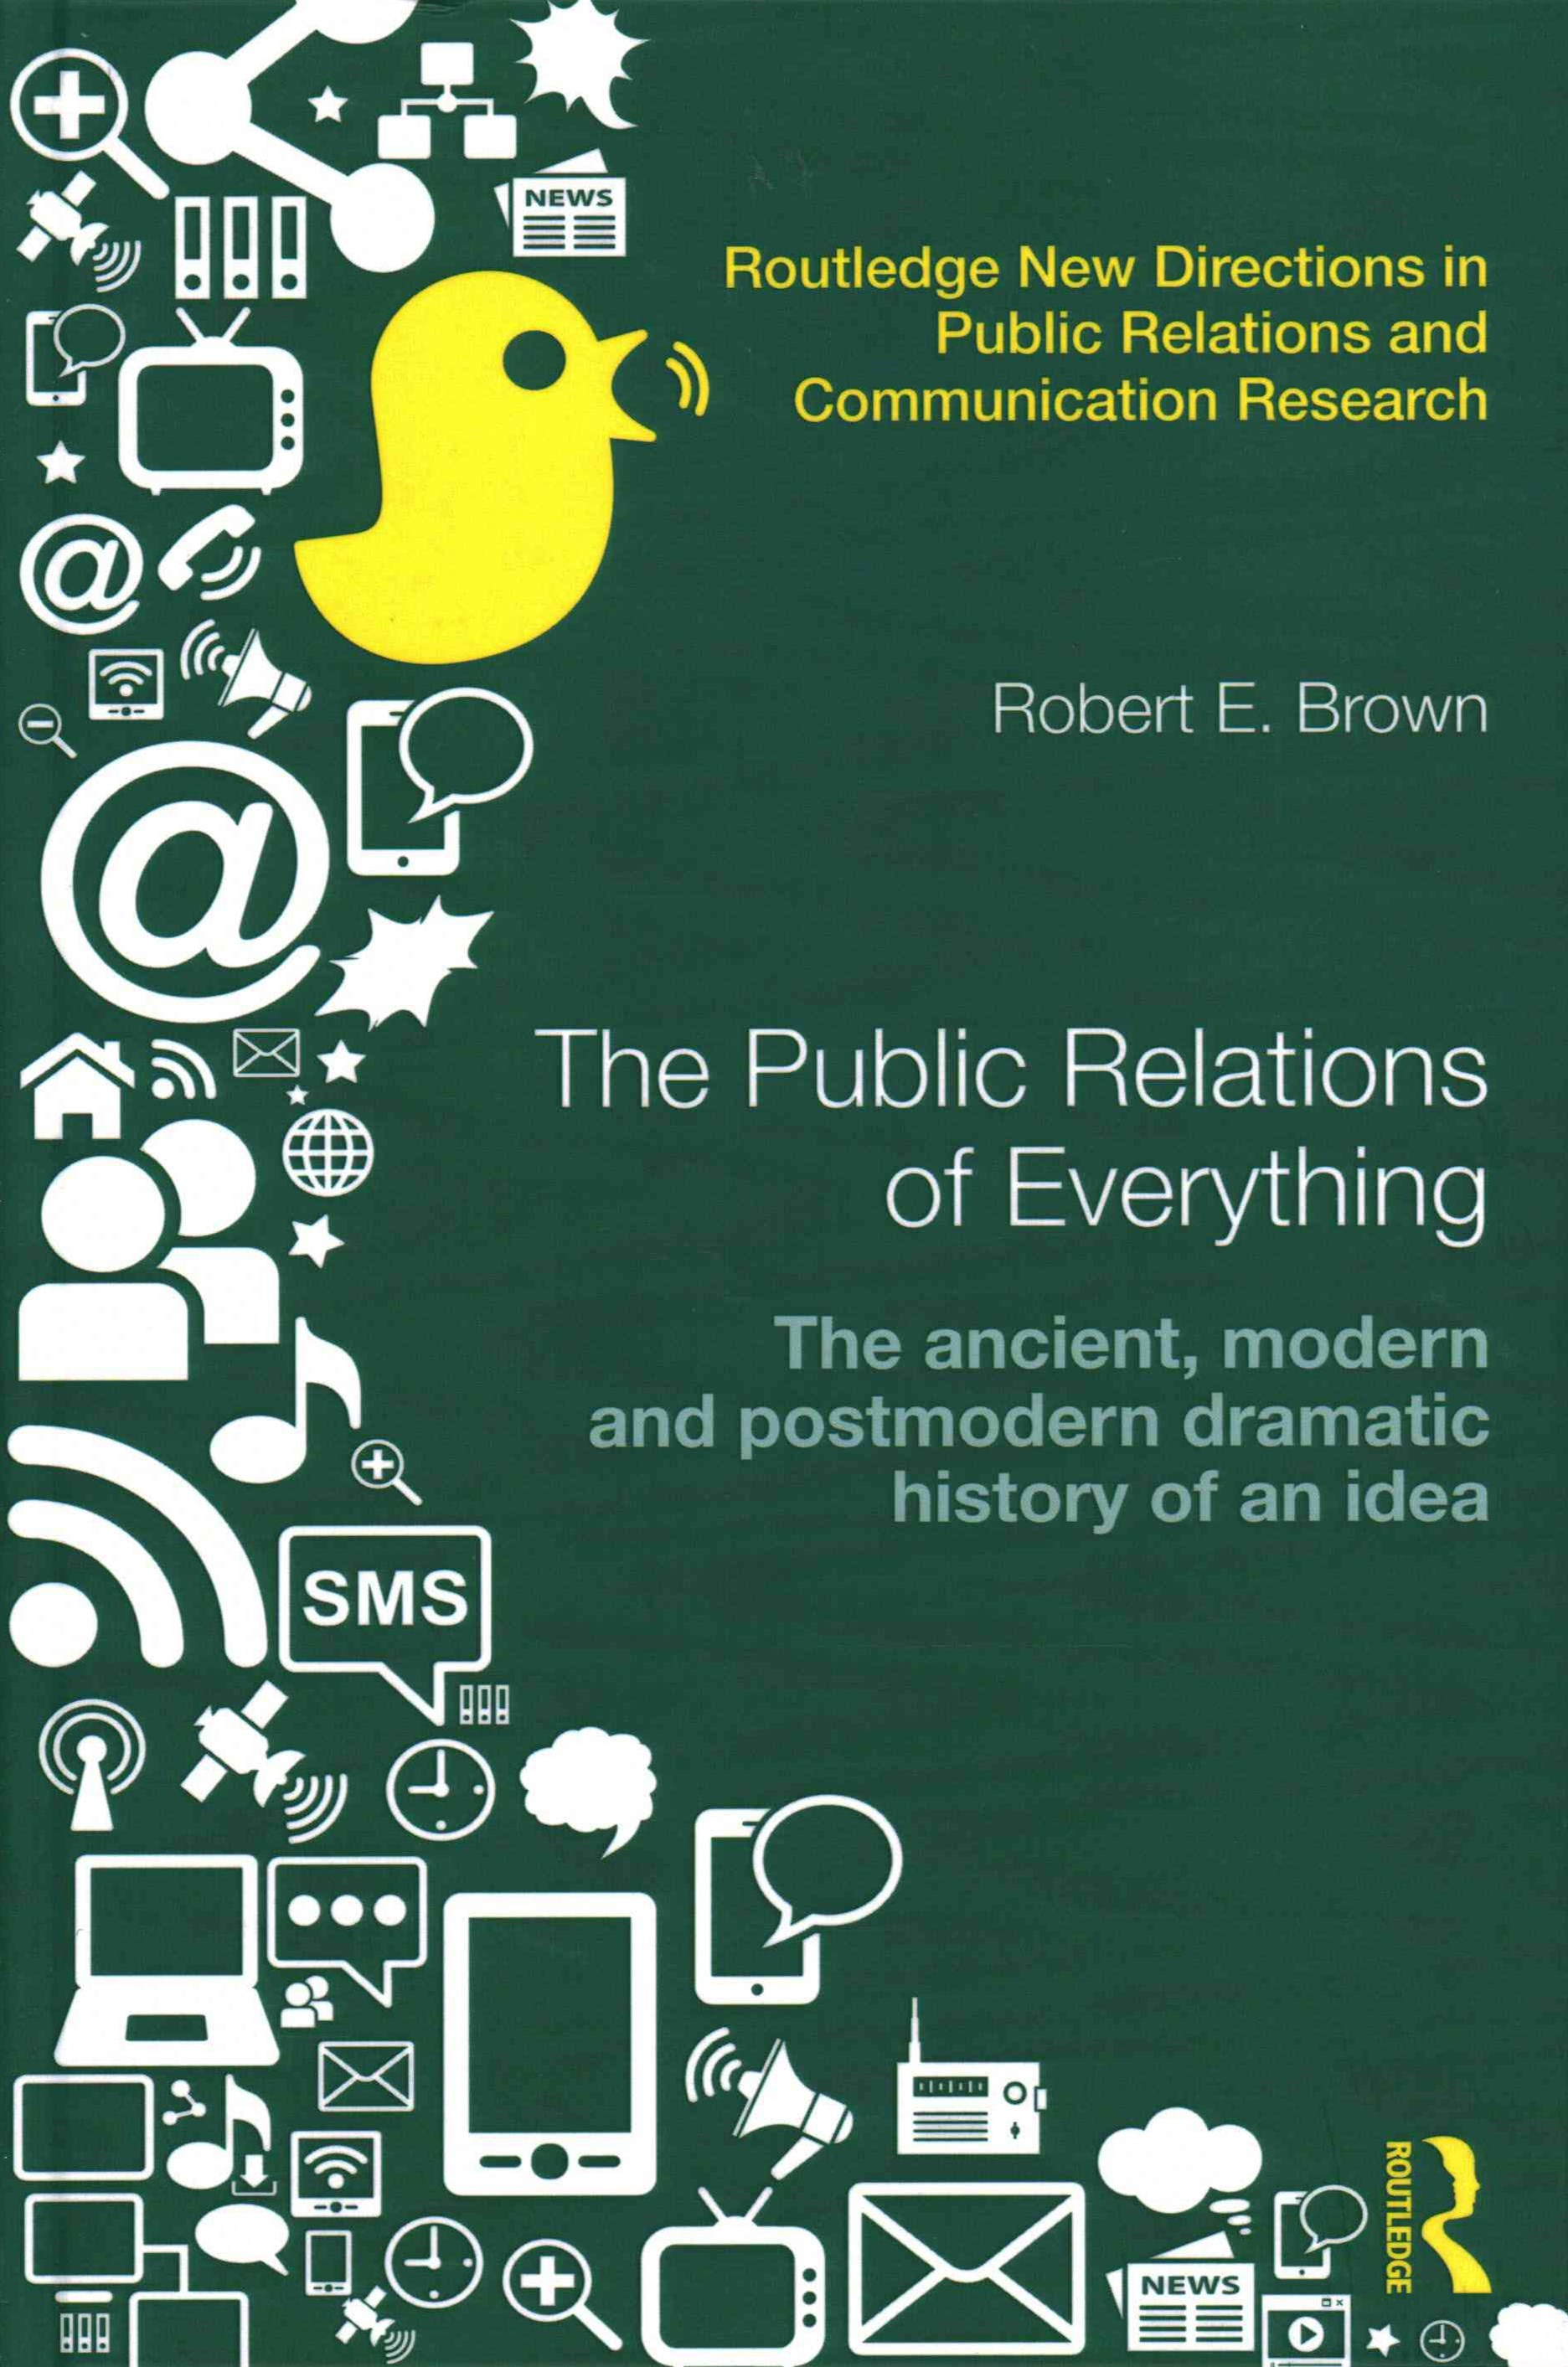 The Public Relations of Everything